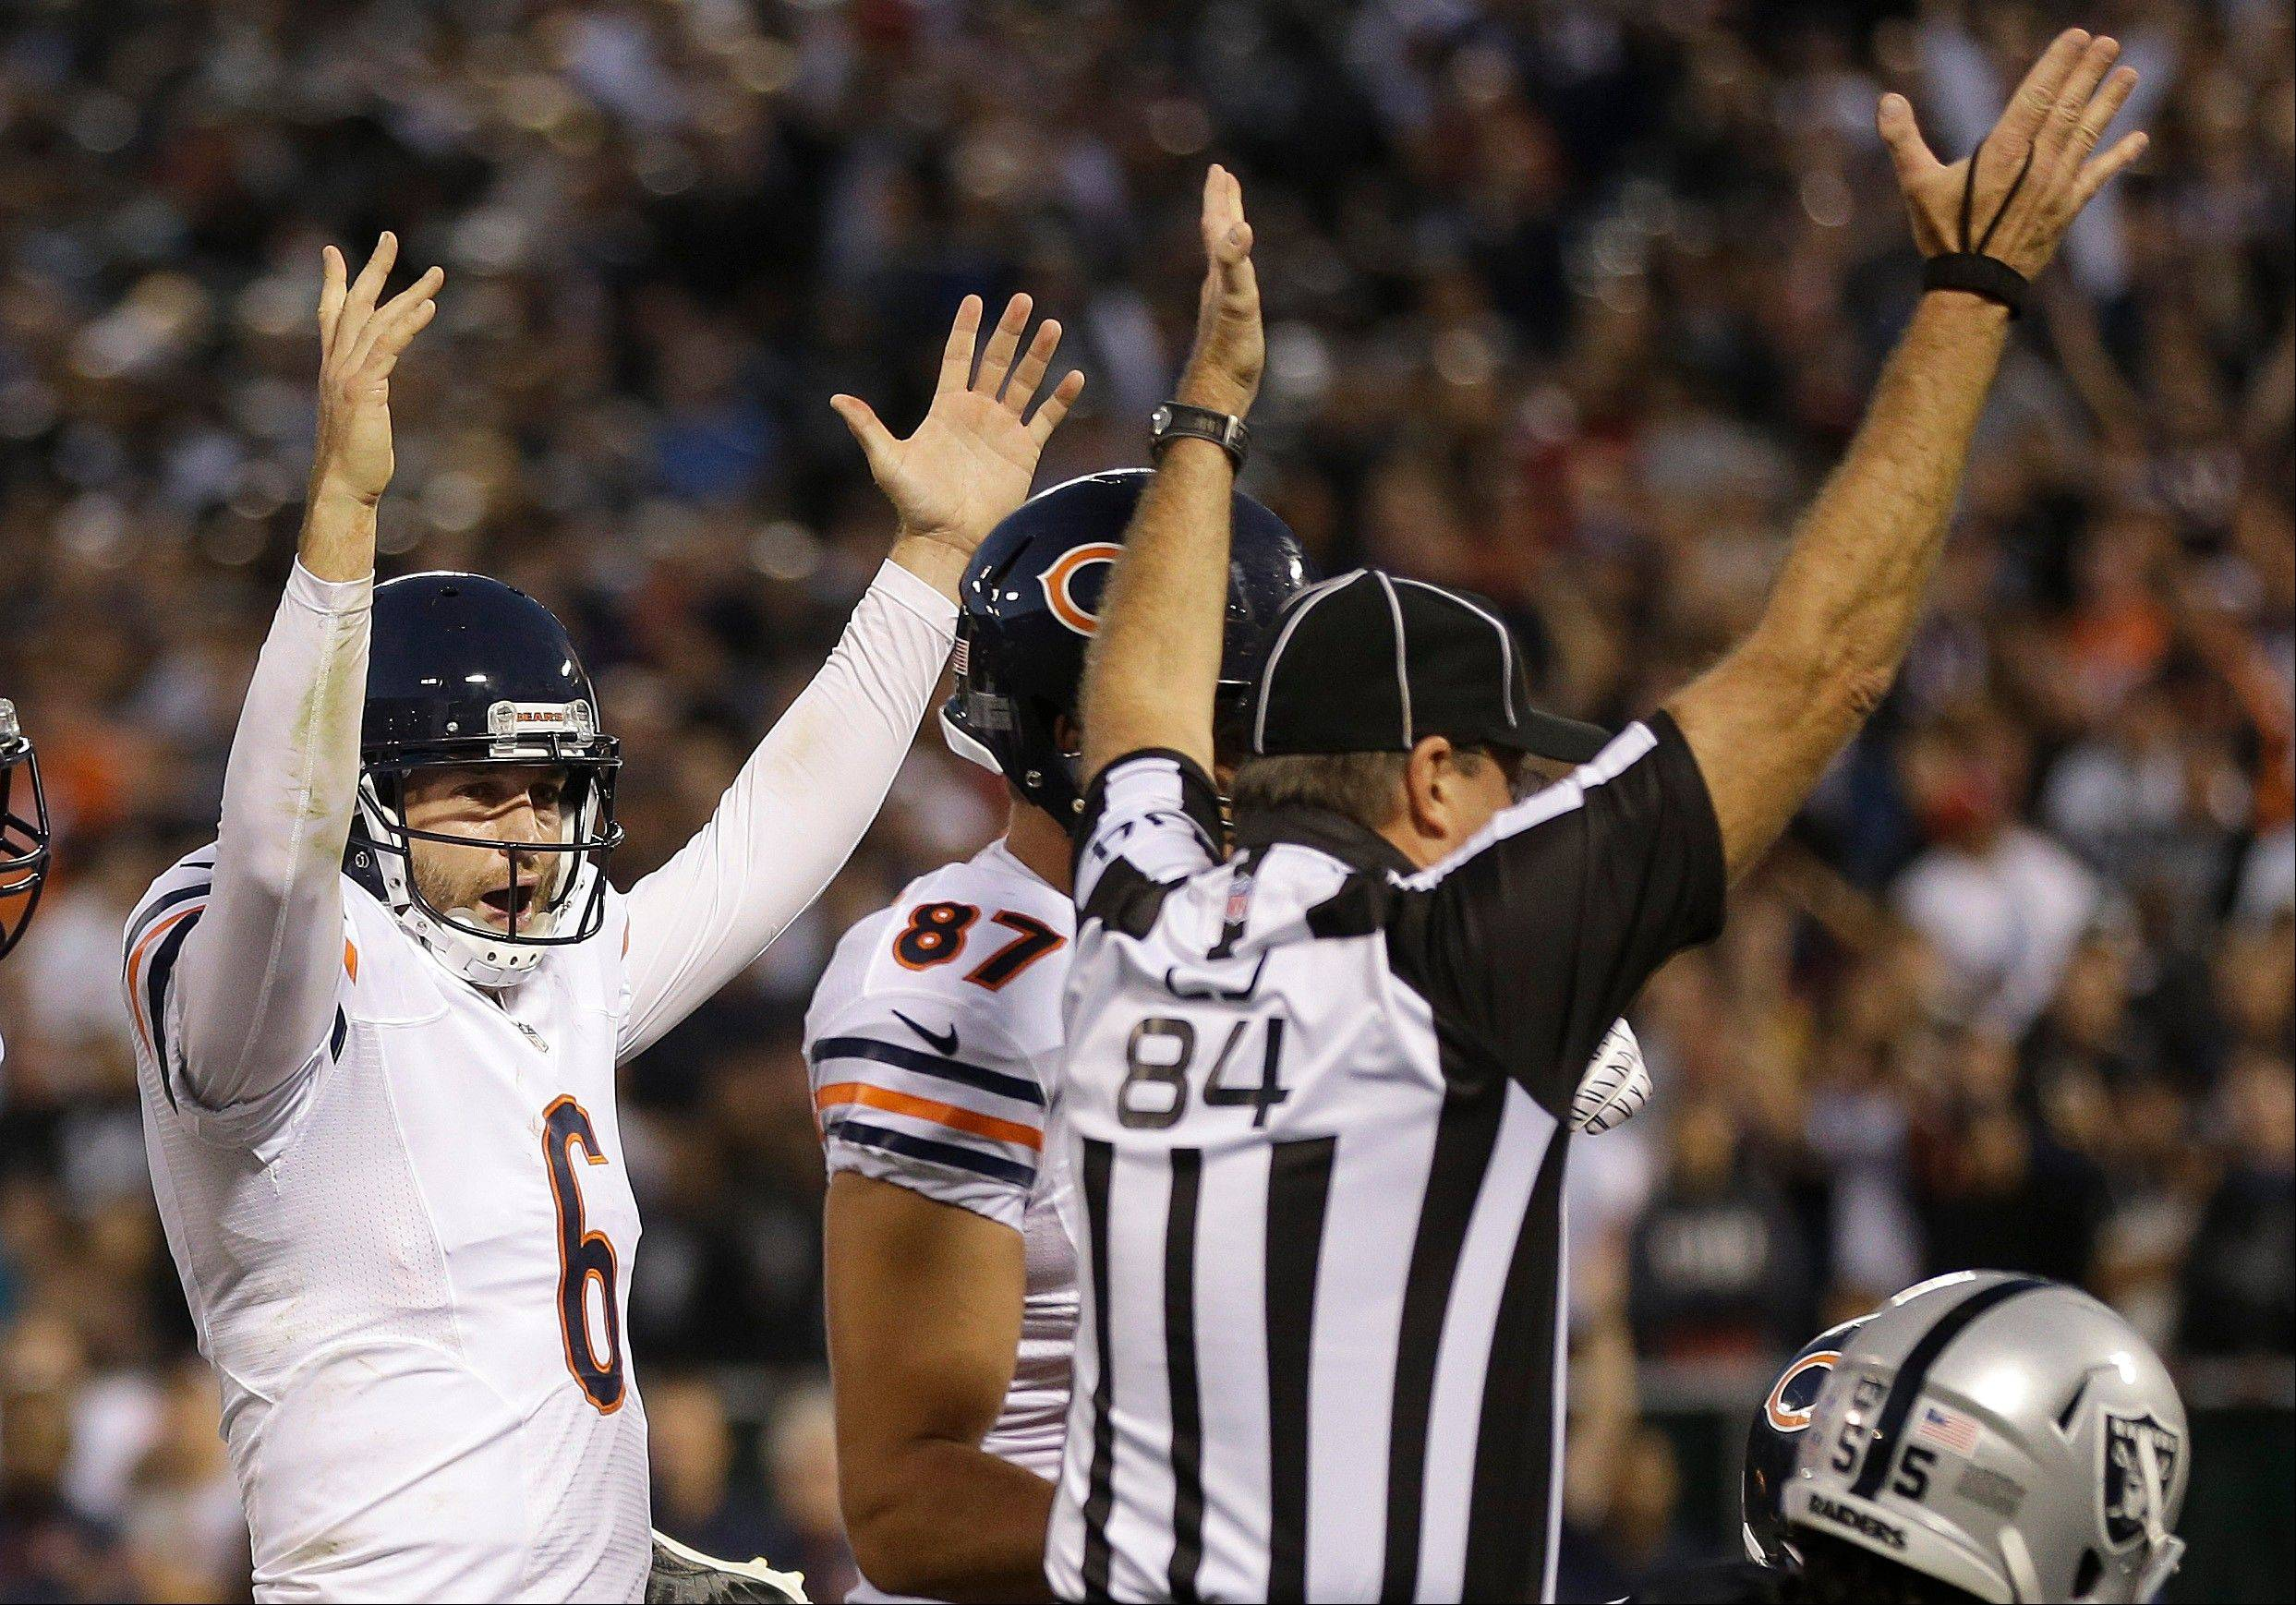 Chicago Bears quarterback Jay Cutler (6) celebrates a touchdown run by running back Michael Bush during the second quarter of an NFL preseason football game against the Oakland Raiders in Oakland, Calif., Friday, Aug. 23, 2013. (AP Photo/Marcio Jose Sanchez)